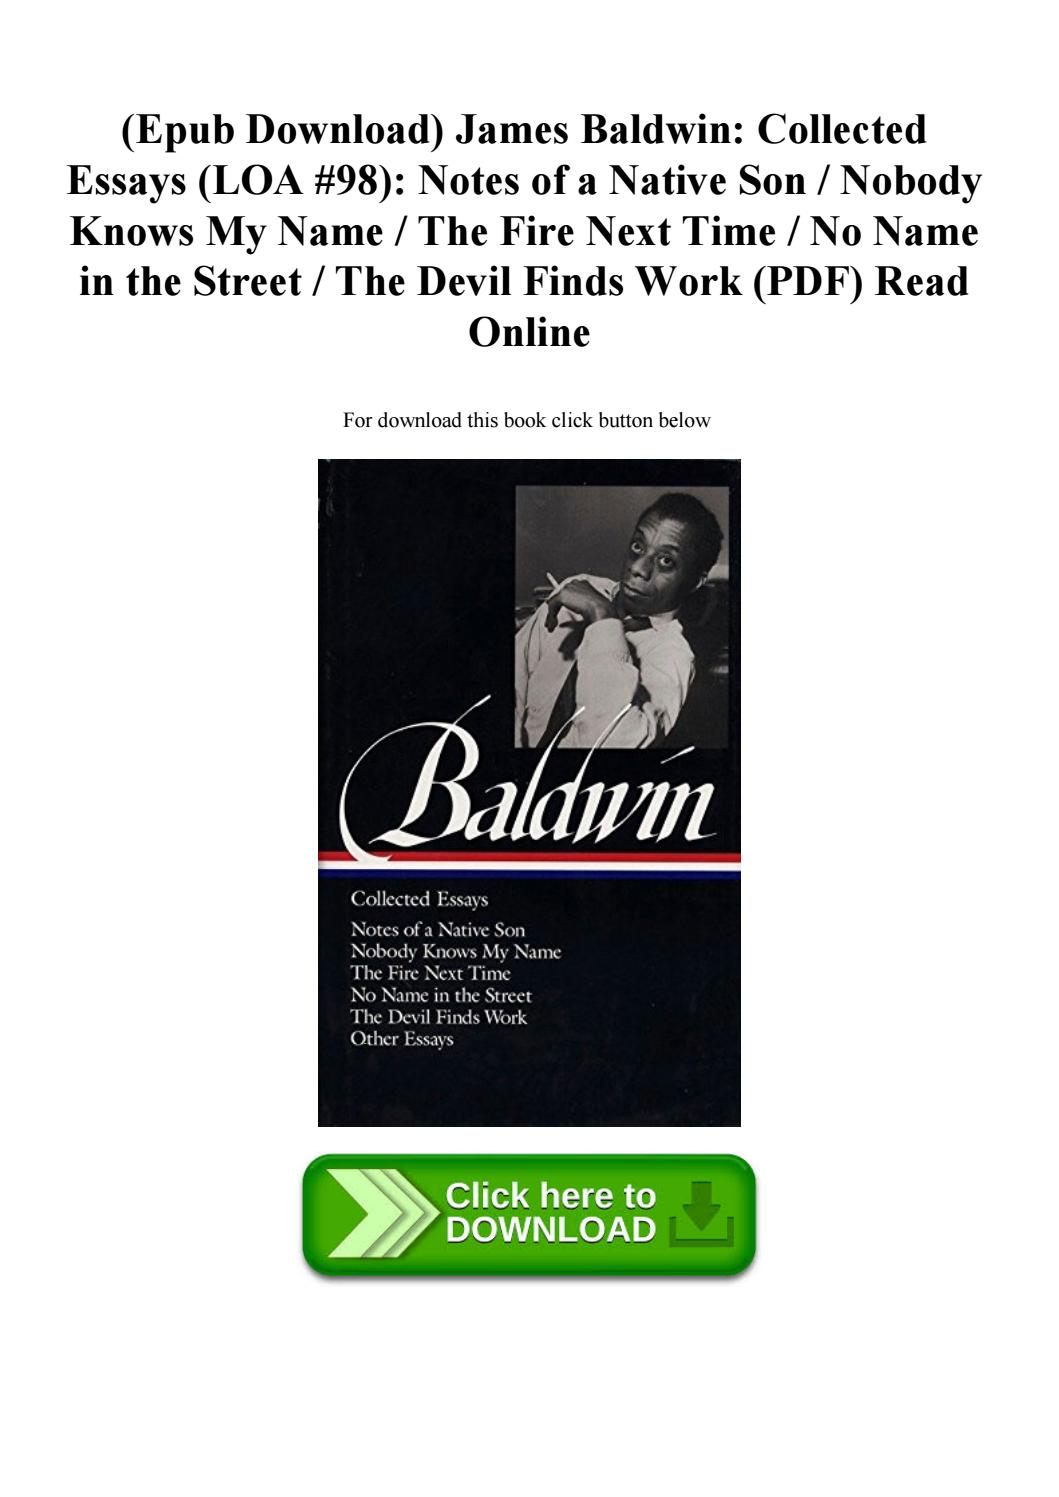 003 James Baldwin Collected Essays Essay Example Page 1 Wondrous Google Books Pdf Table Of Contents Full